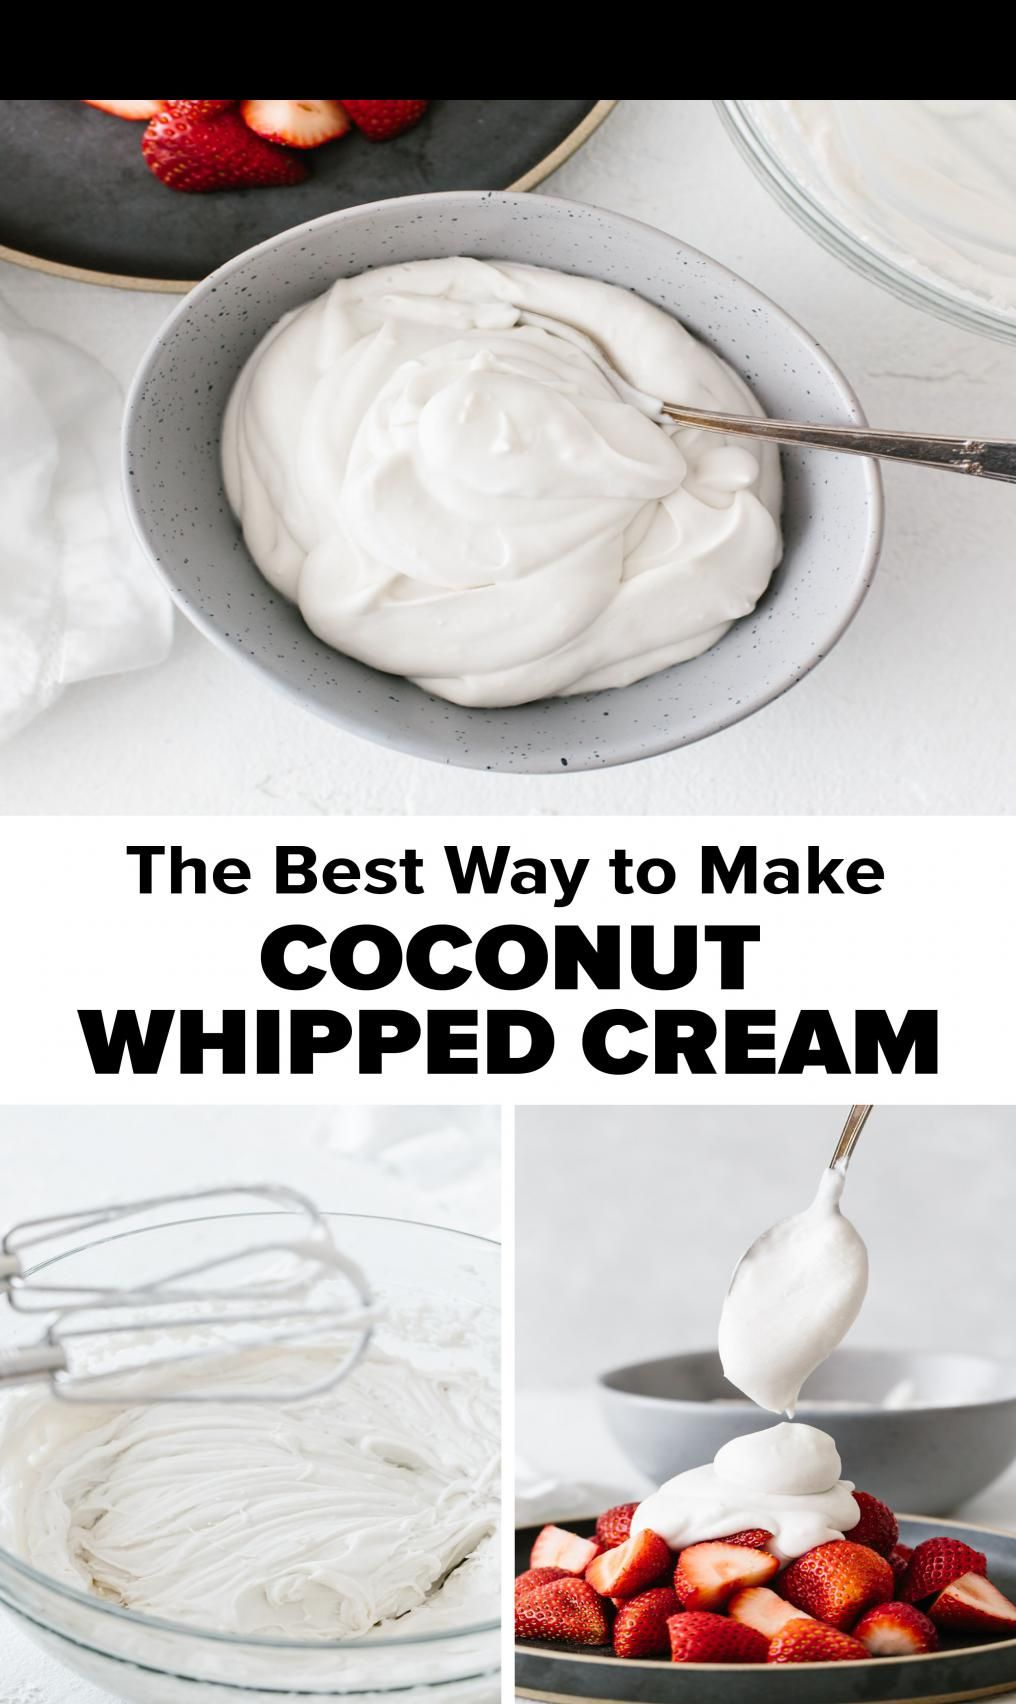 Learn How To Make Coconut Whipped Cream Coconut Whipped Cream Is A Delicious Dairy Free And Vegan Alternat In 2020 Coconut Whipped Cream Vegan Alternatives Dairy Free